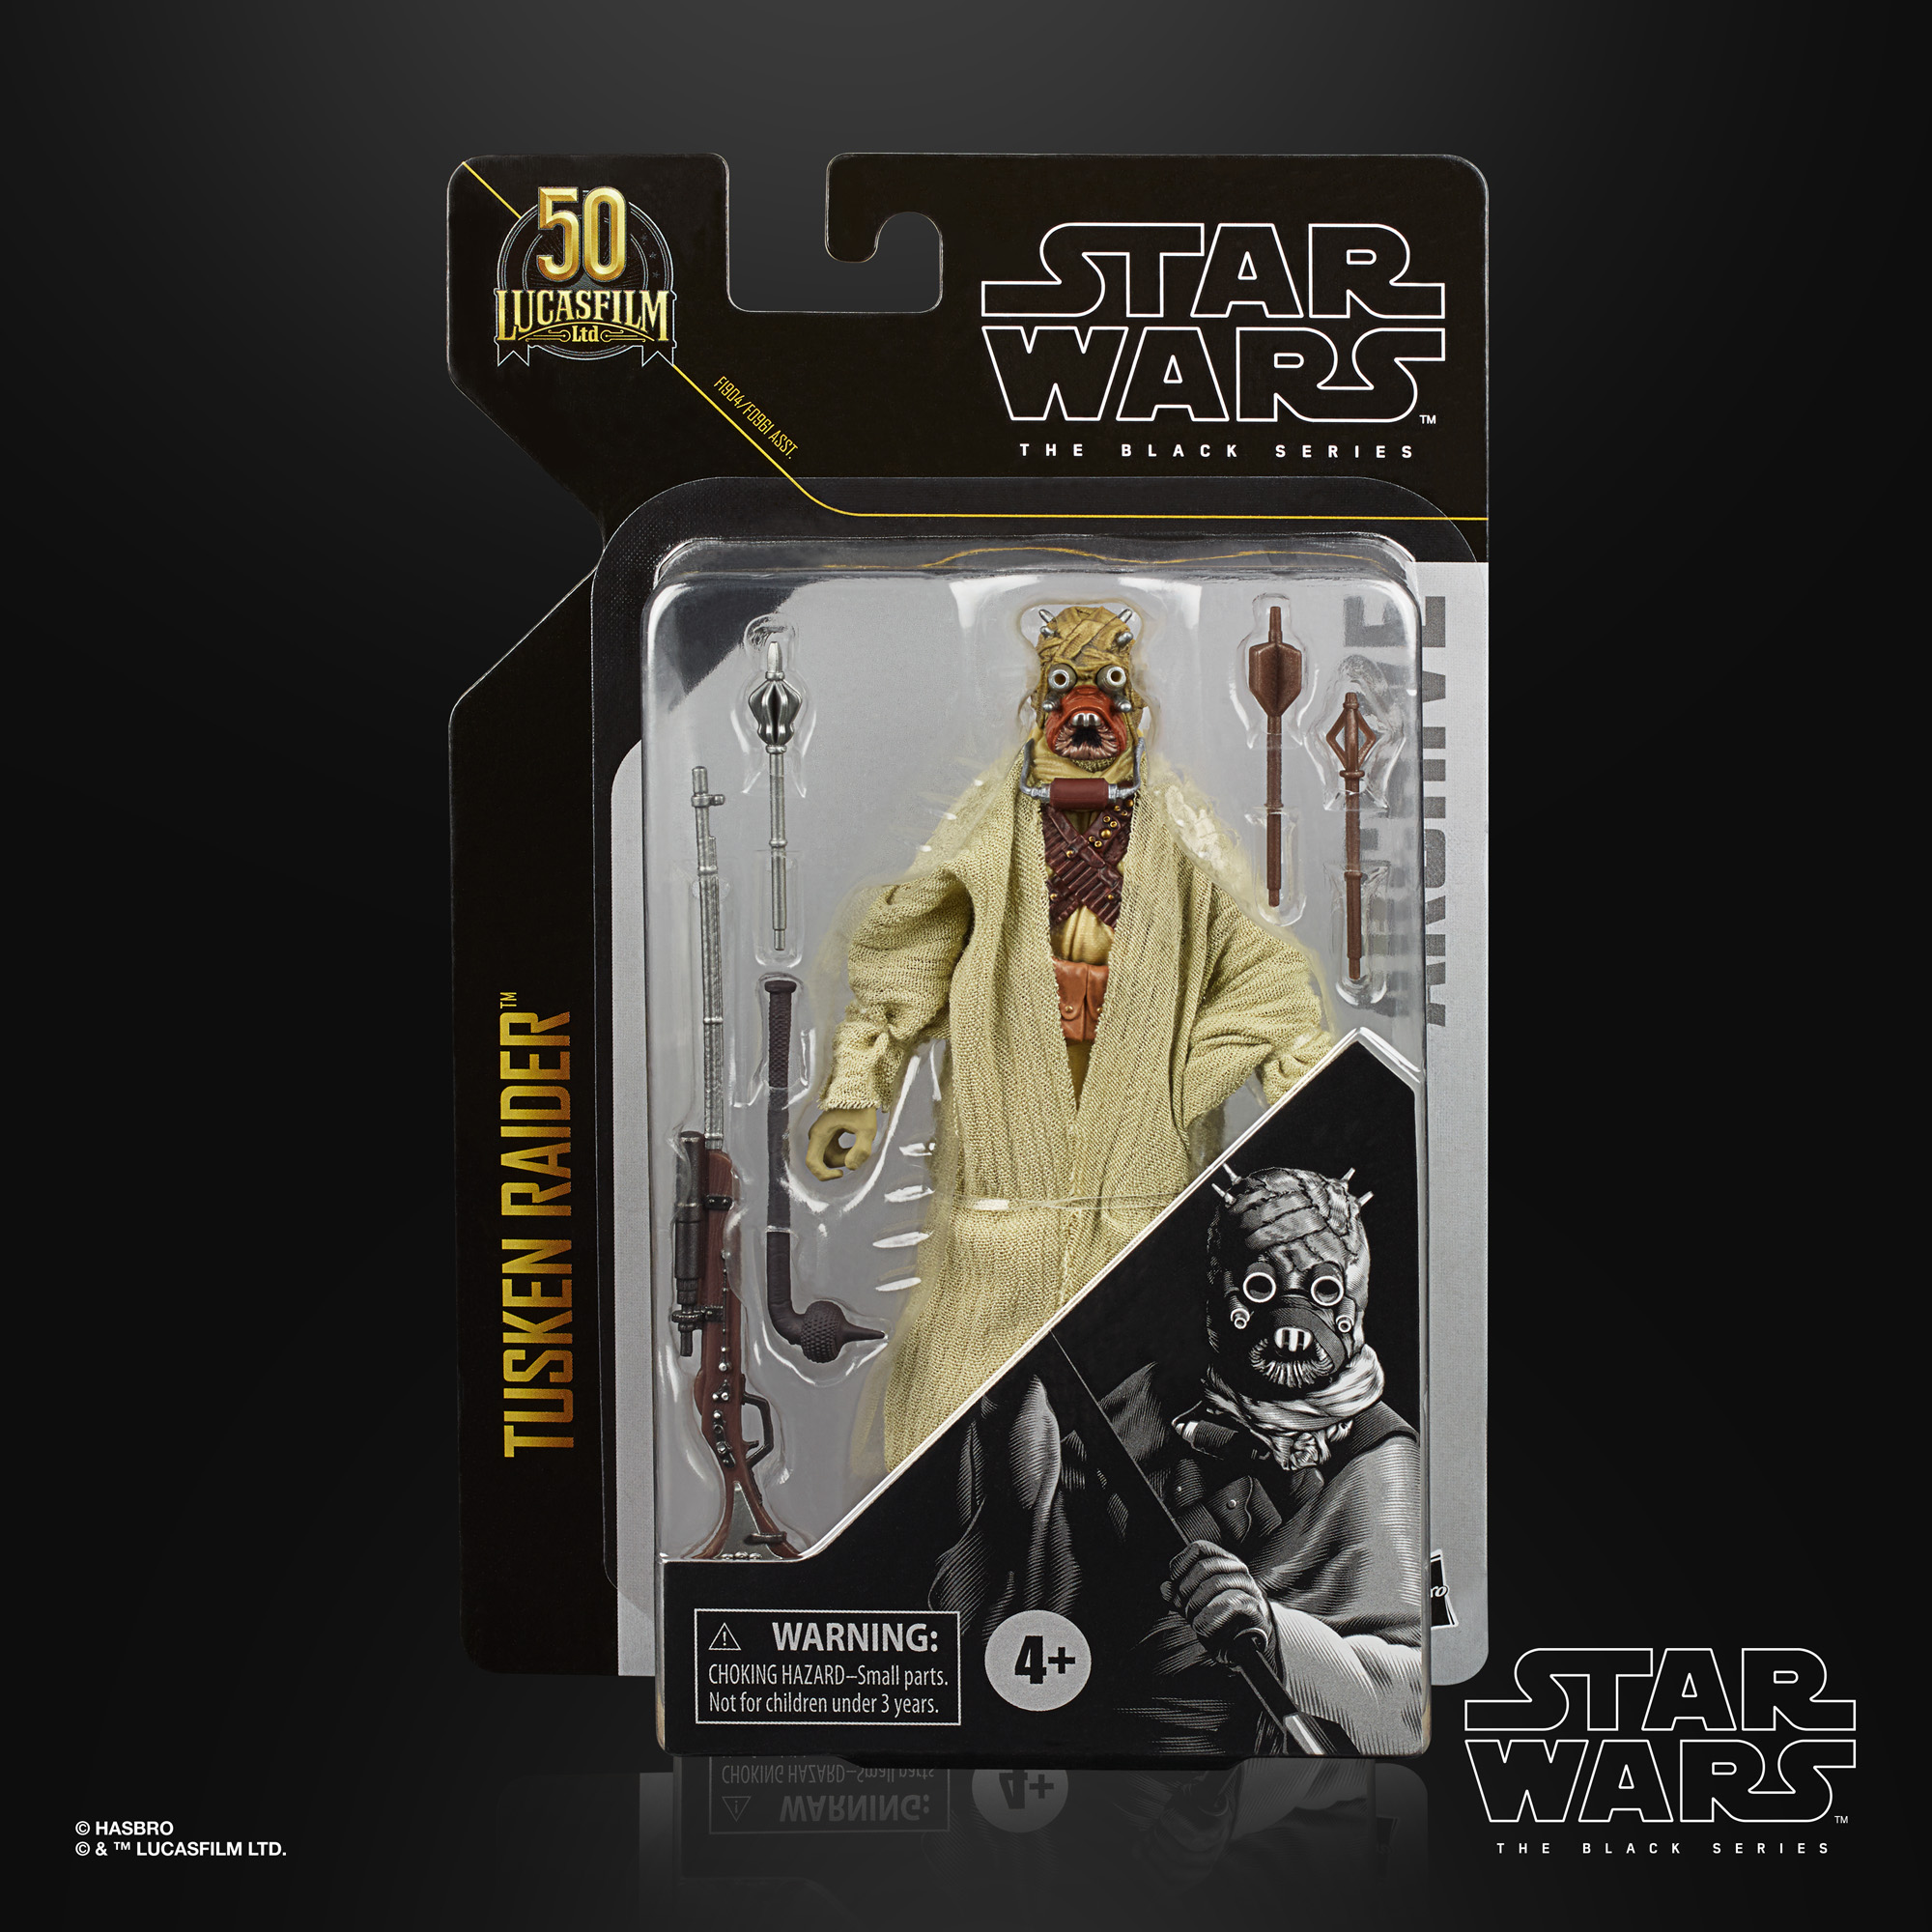 STAR WARS THE BLACK SERIES ARCHIVE 6-INCH TUSKEN RAIDER Figure – in pck (1)